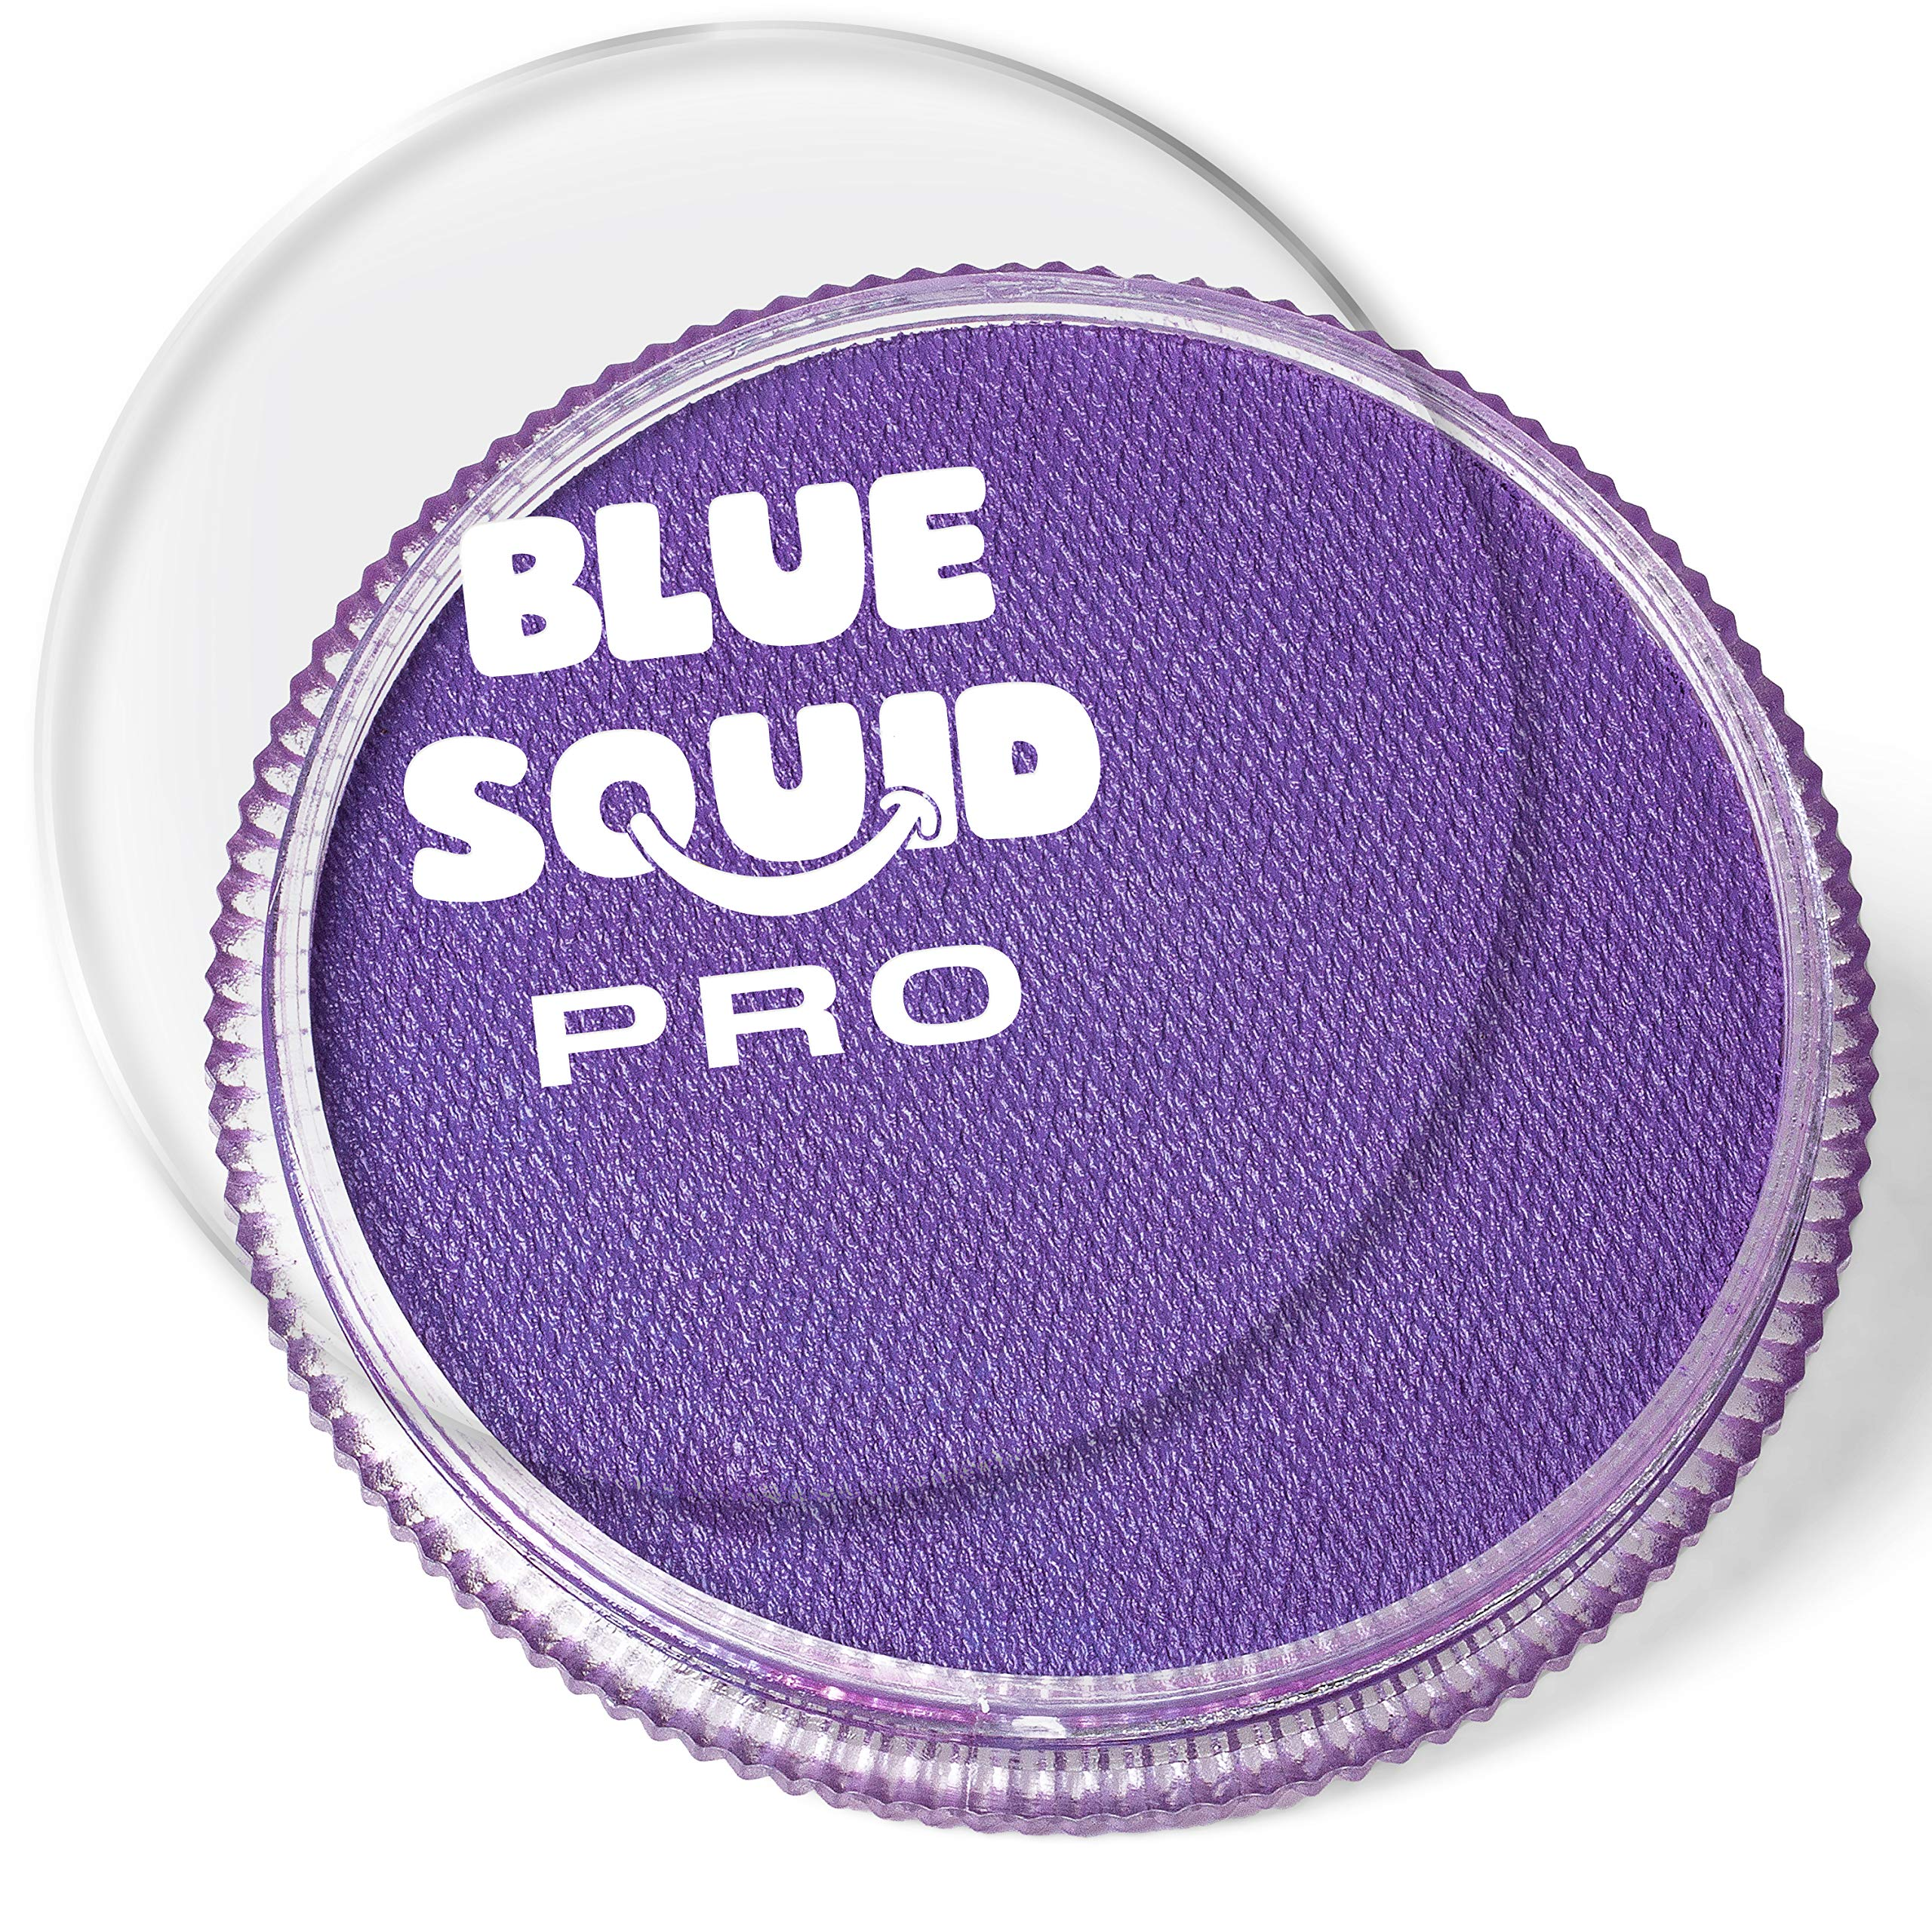 Blue Squid PRO Face Paint - Classic Purple (30gm), Superior Quality Professional Water Based Single Cake, Face & Body Makeup Supplies for Adults, Kids & SFX